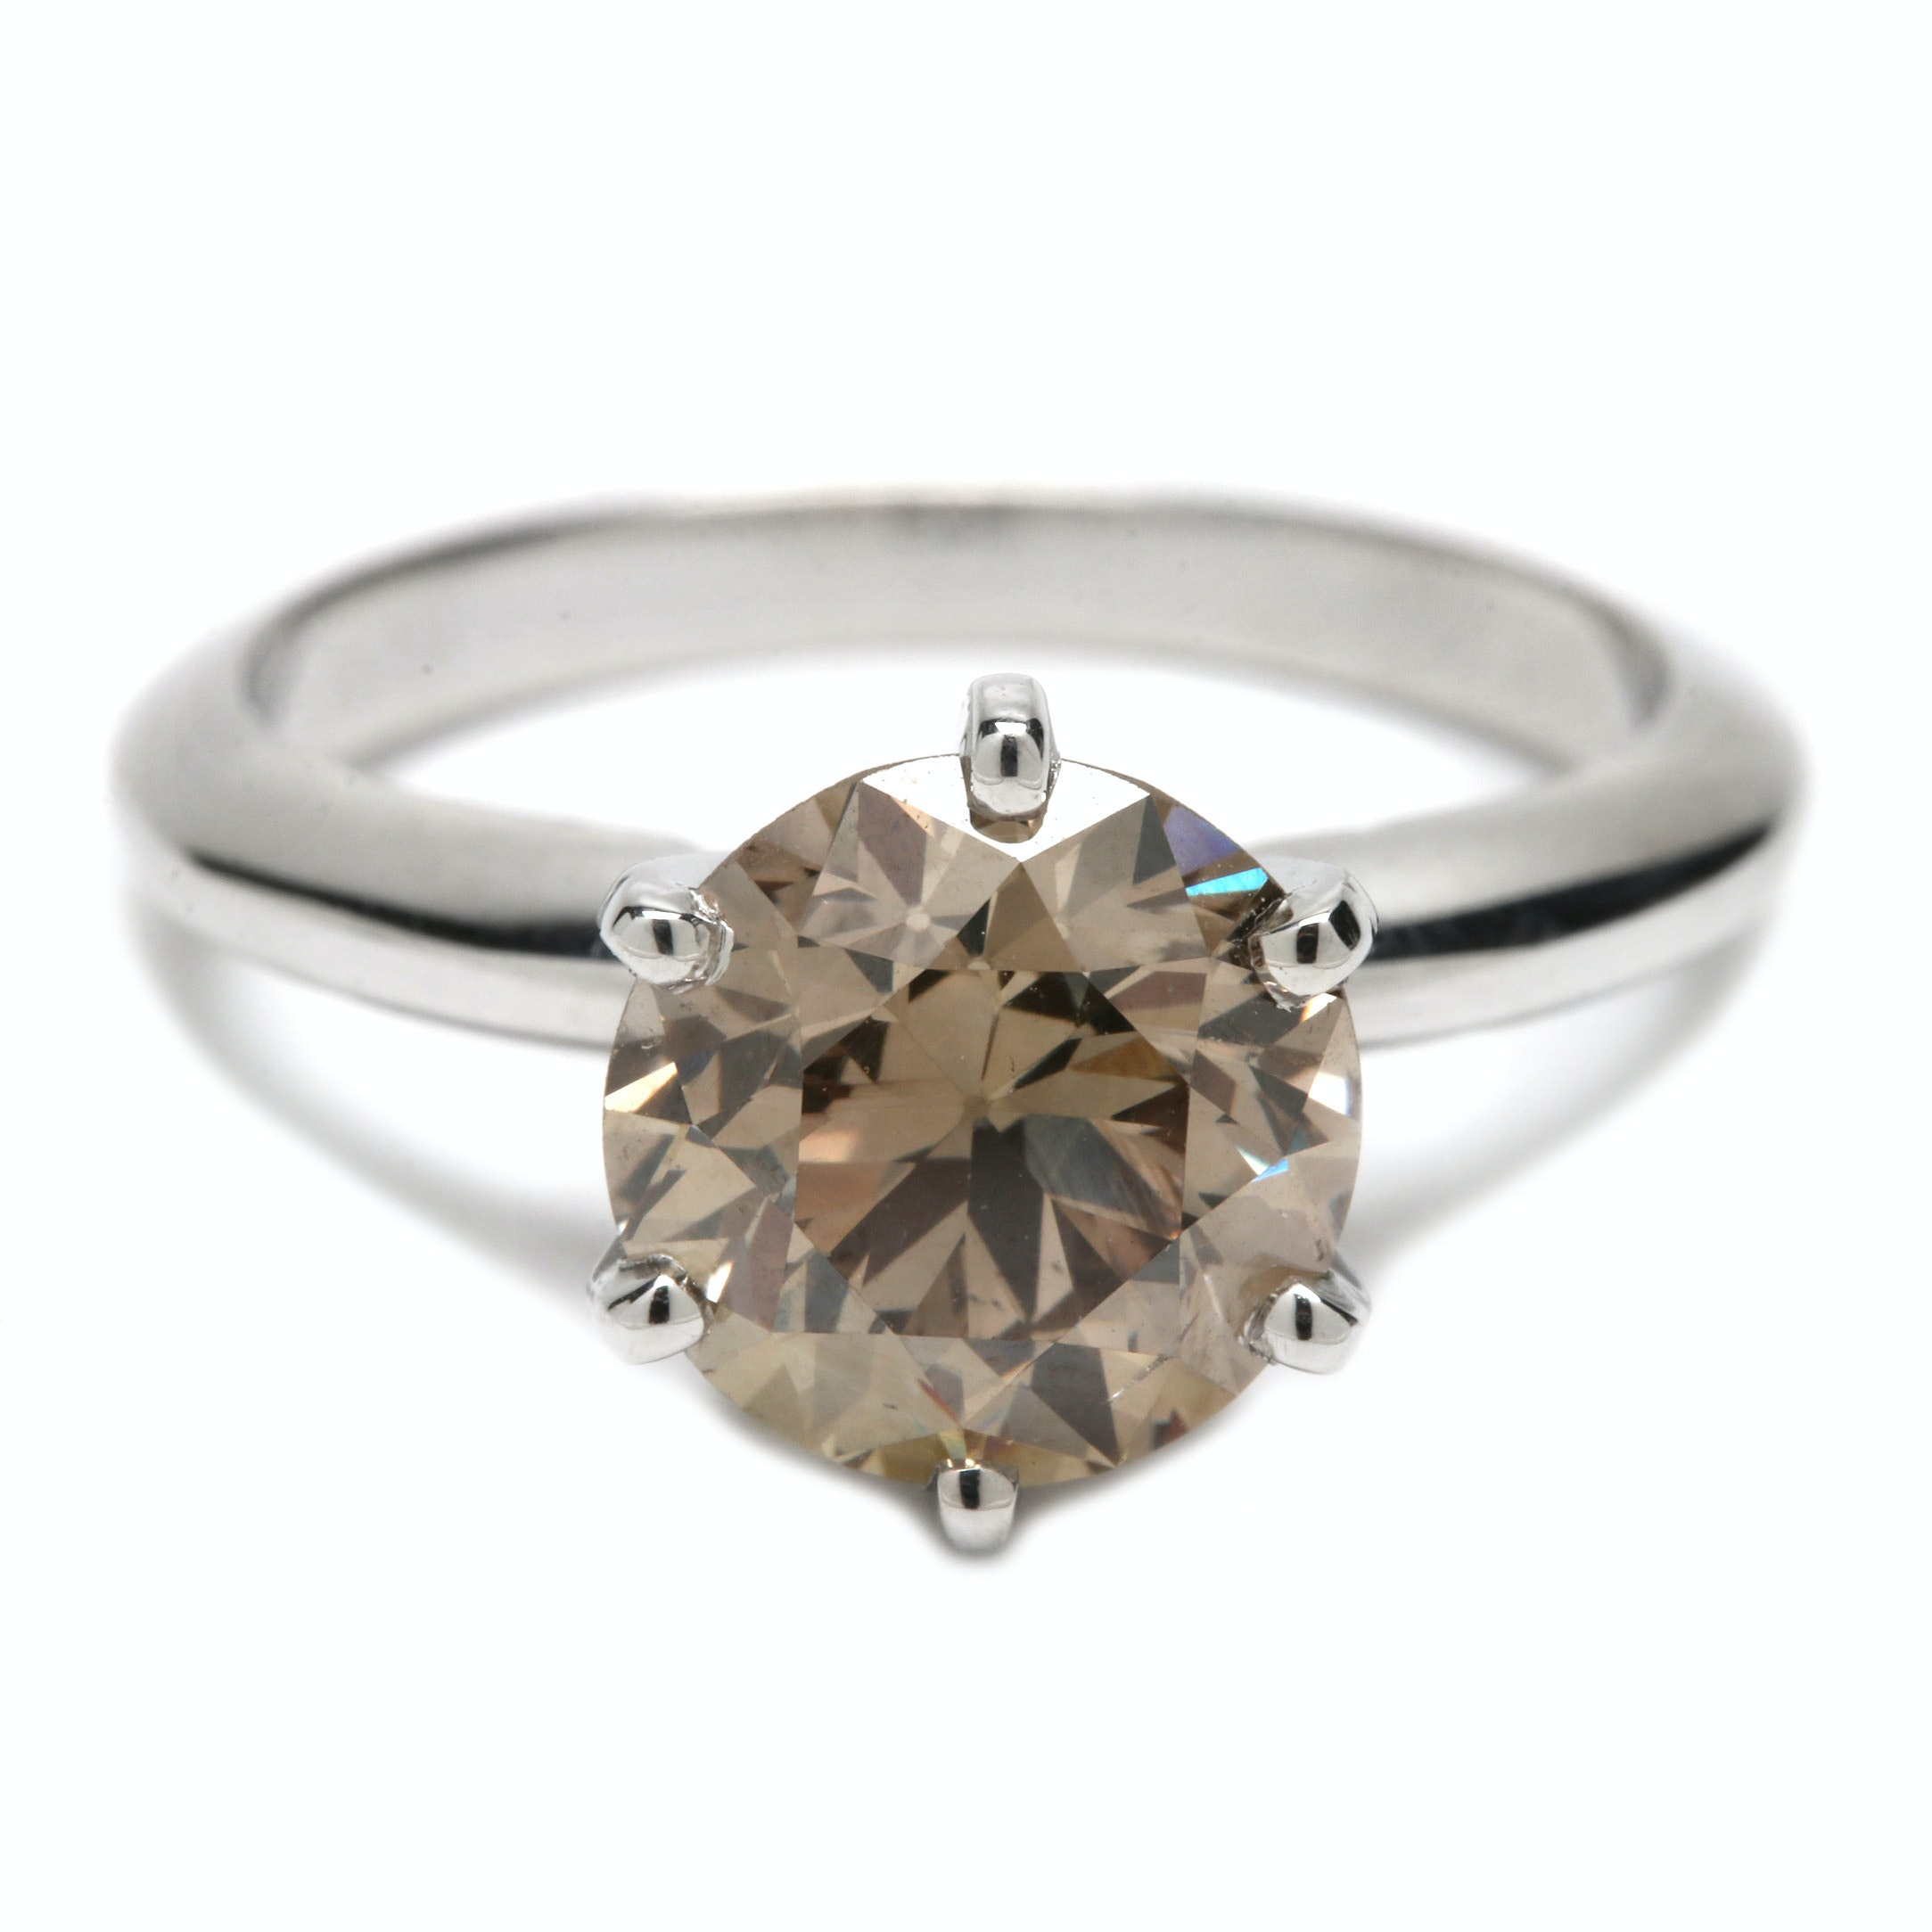 14K White Gold 2.35 CT Diamond Solitaire Ring